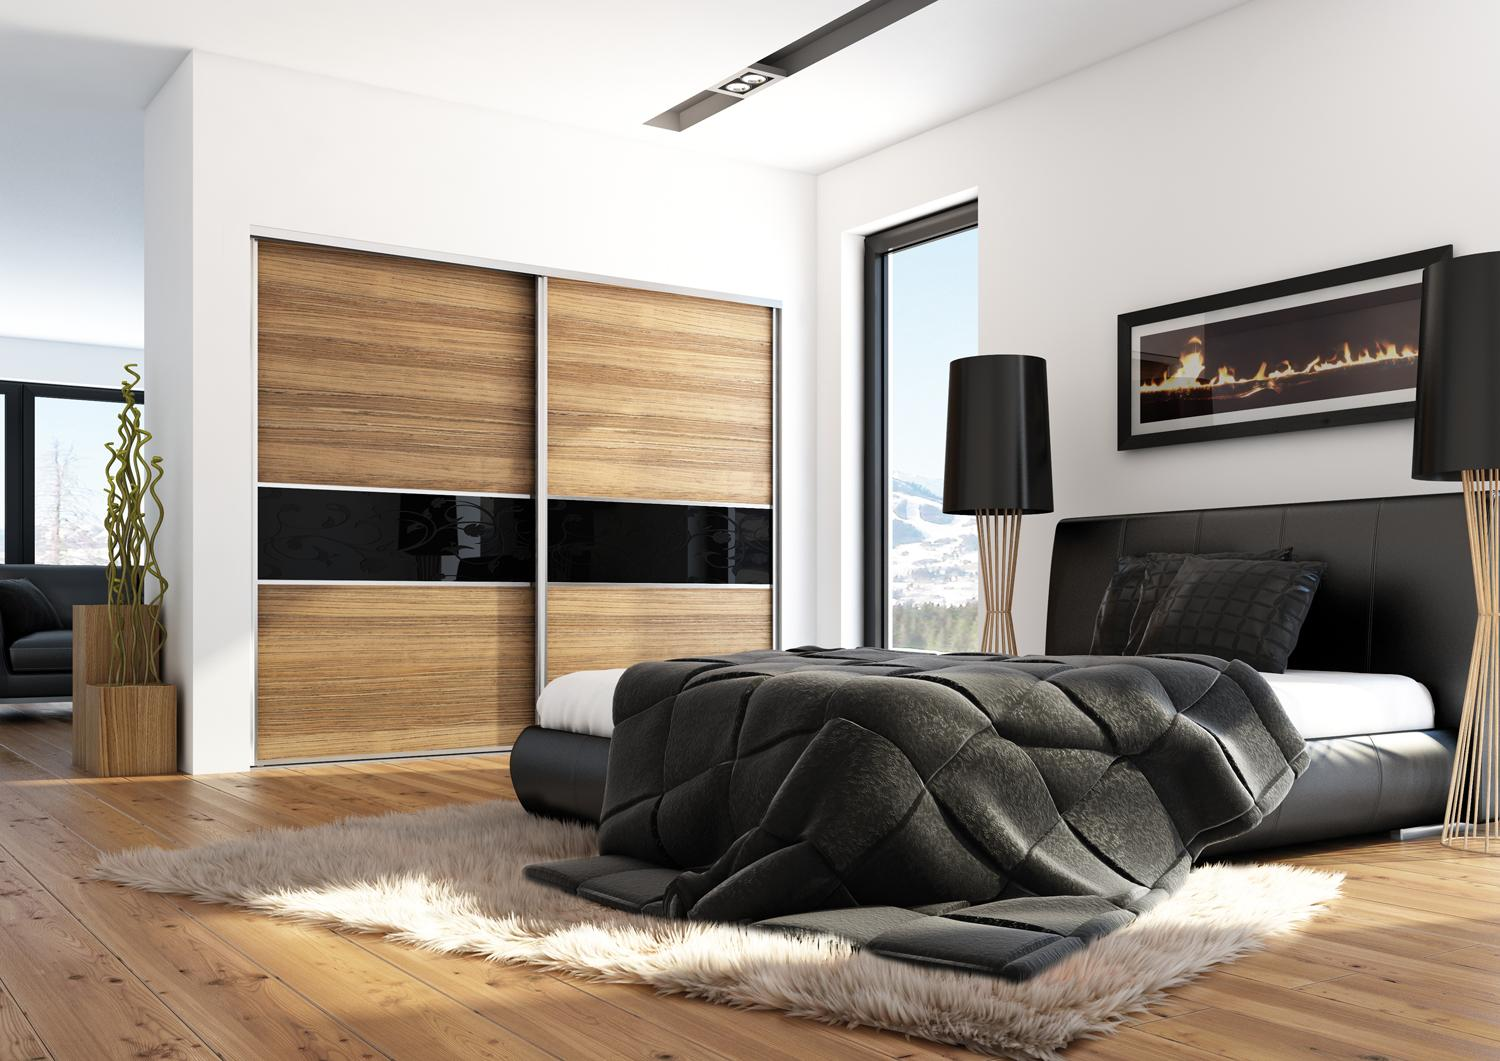 kleiderschrank bilder ideen couchstyle